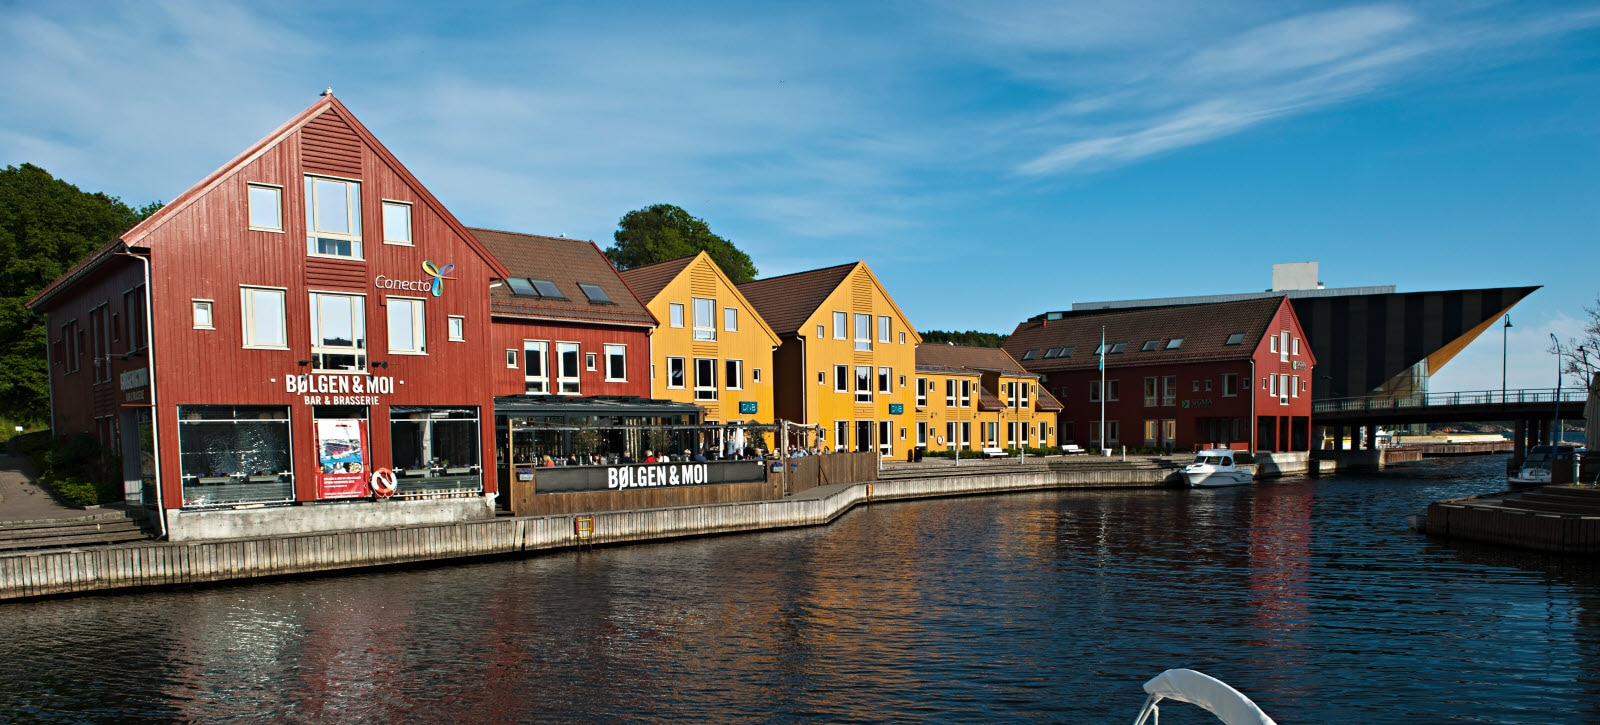 The-Fish-Market-in-Kristiansand-VS-052012-Terje-Ra.jpg